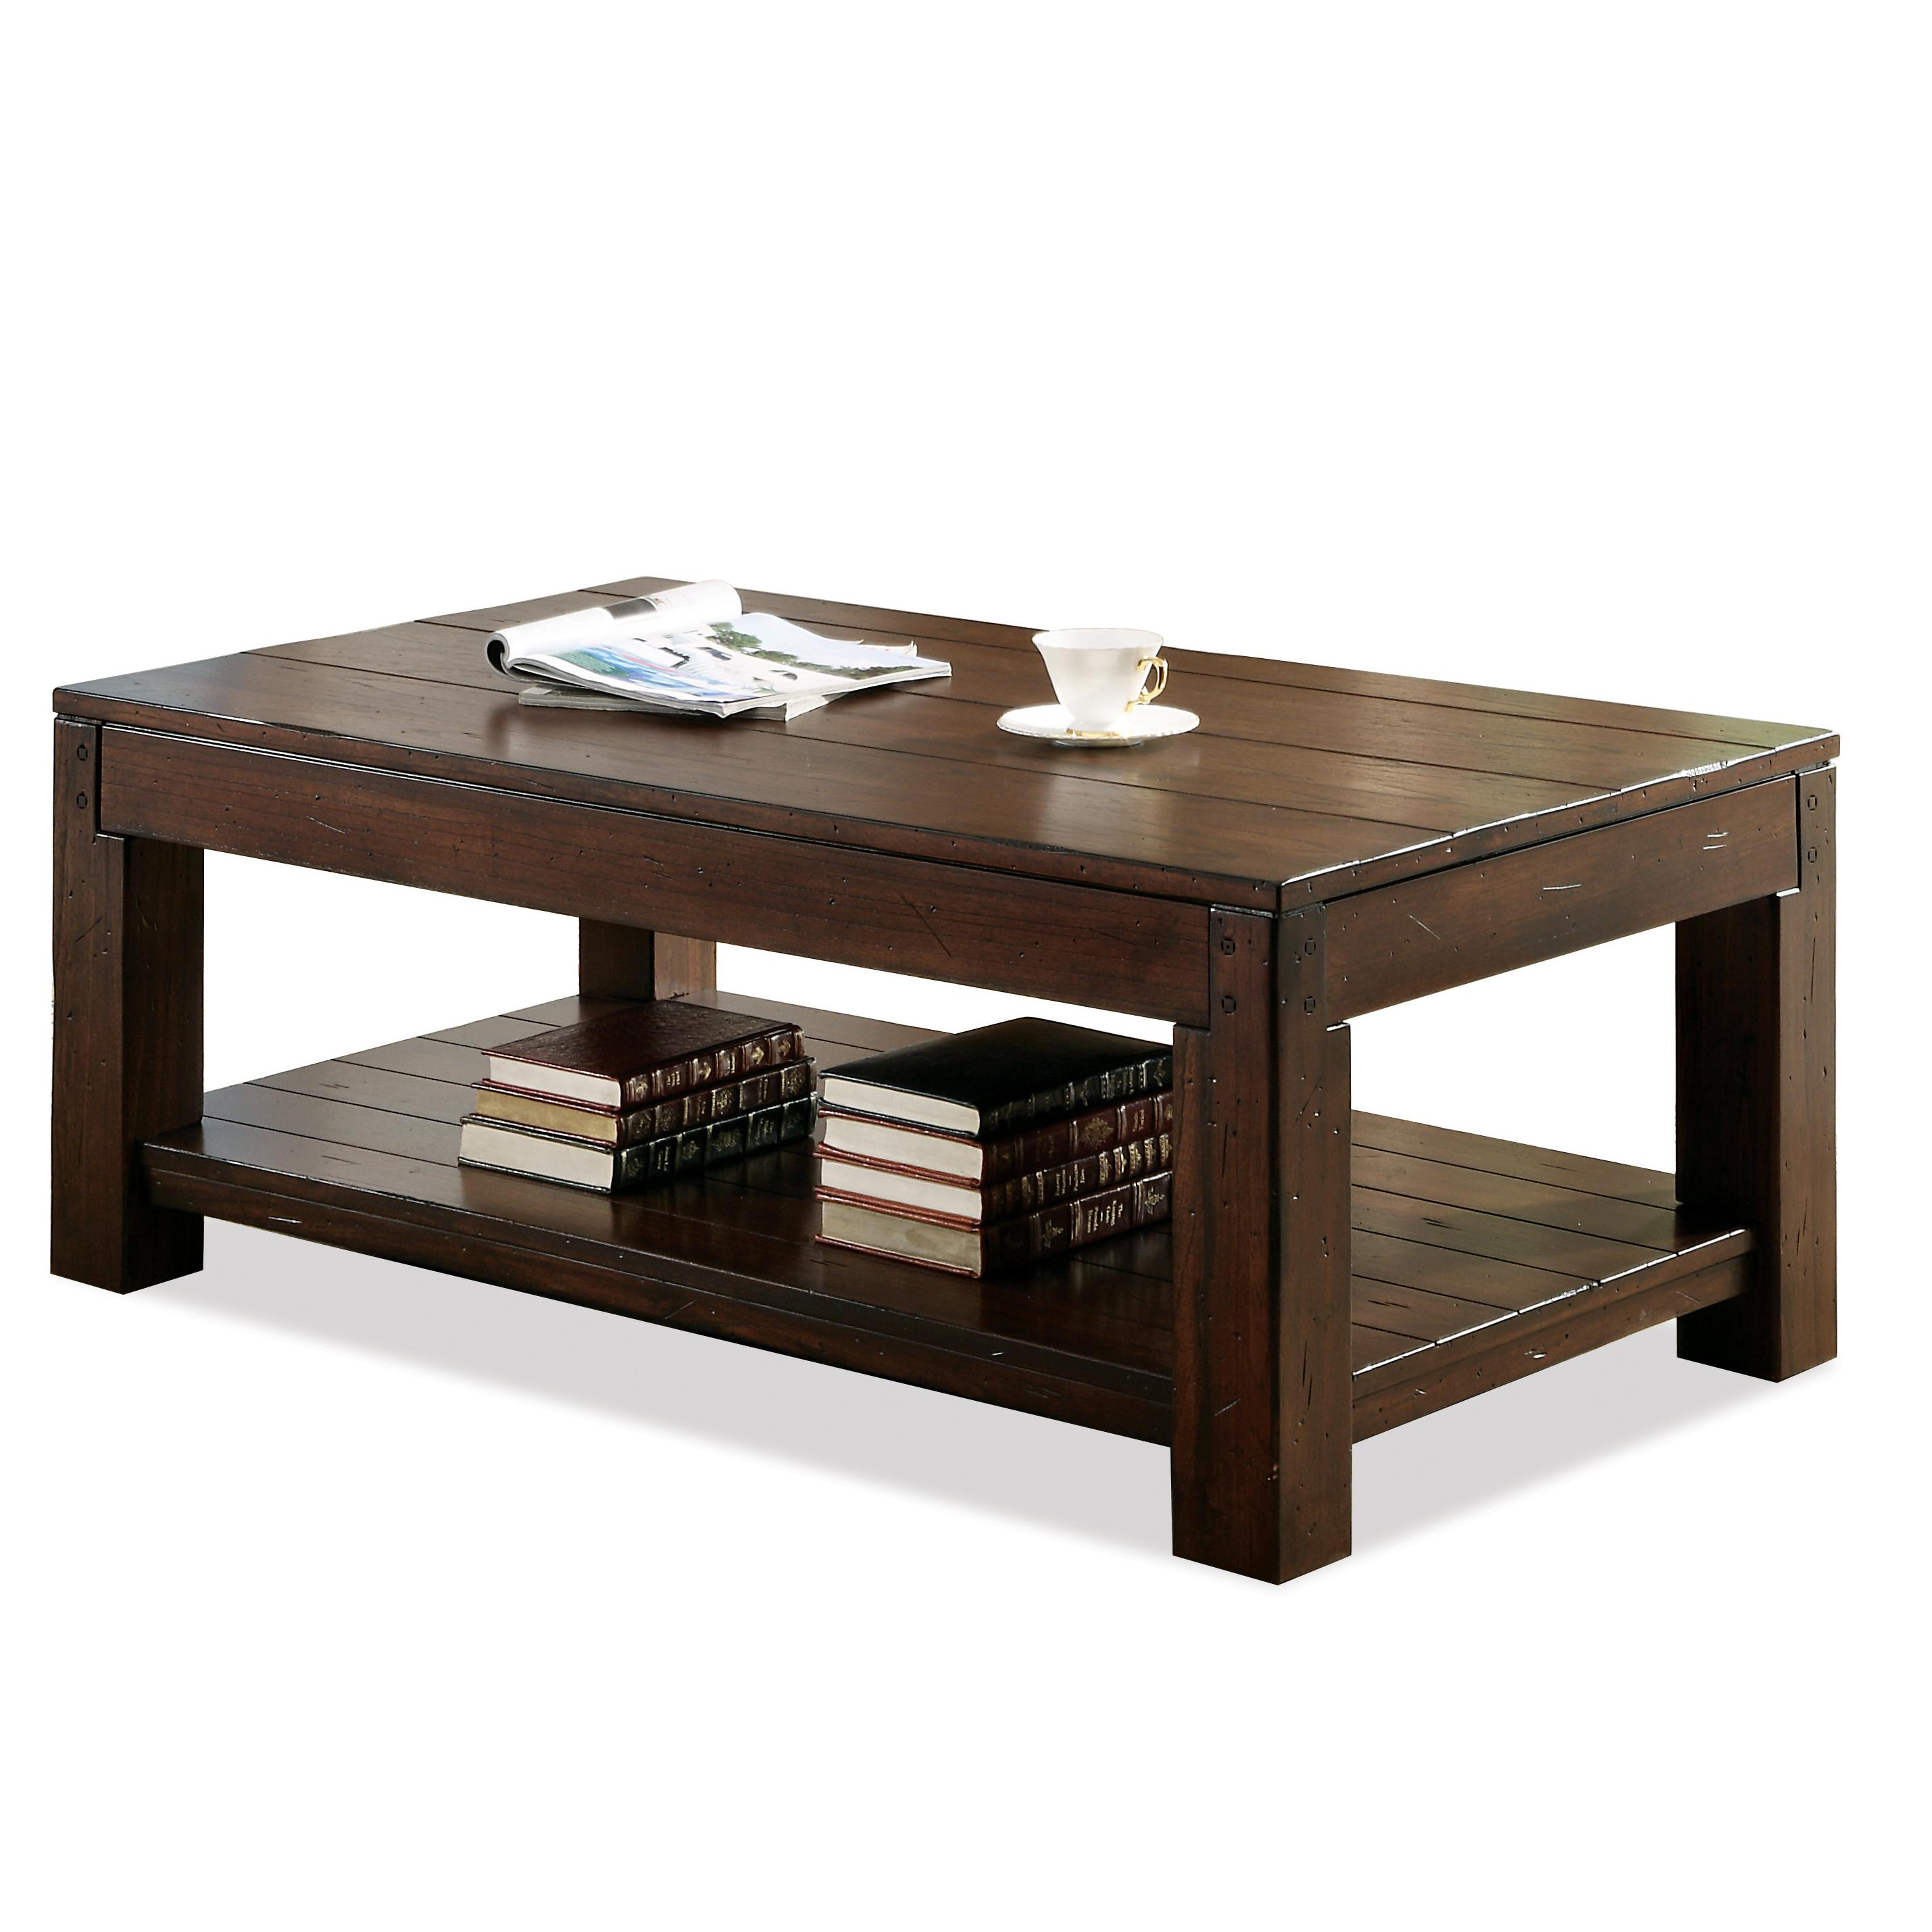 Rectangular Coffee Table With Fixed Lower Shelf And Block Legs By Riverside Furniture Wolf And